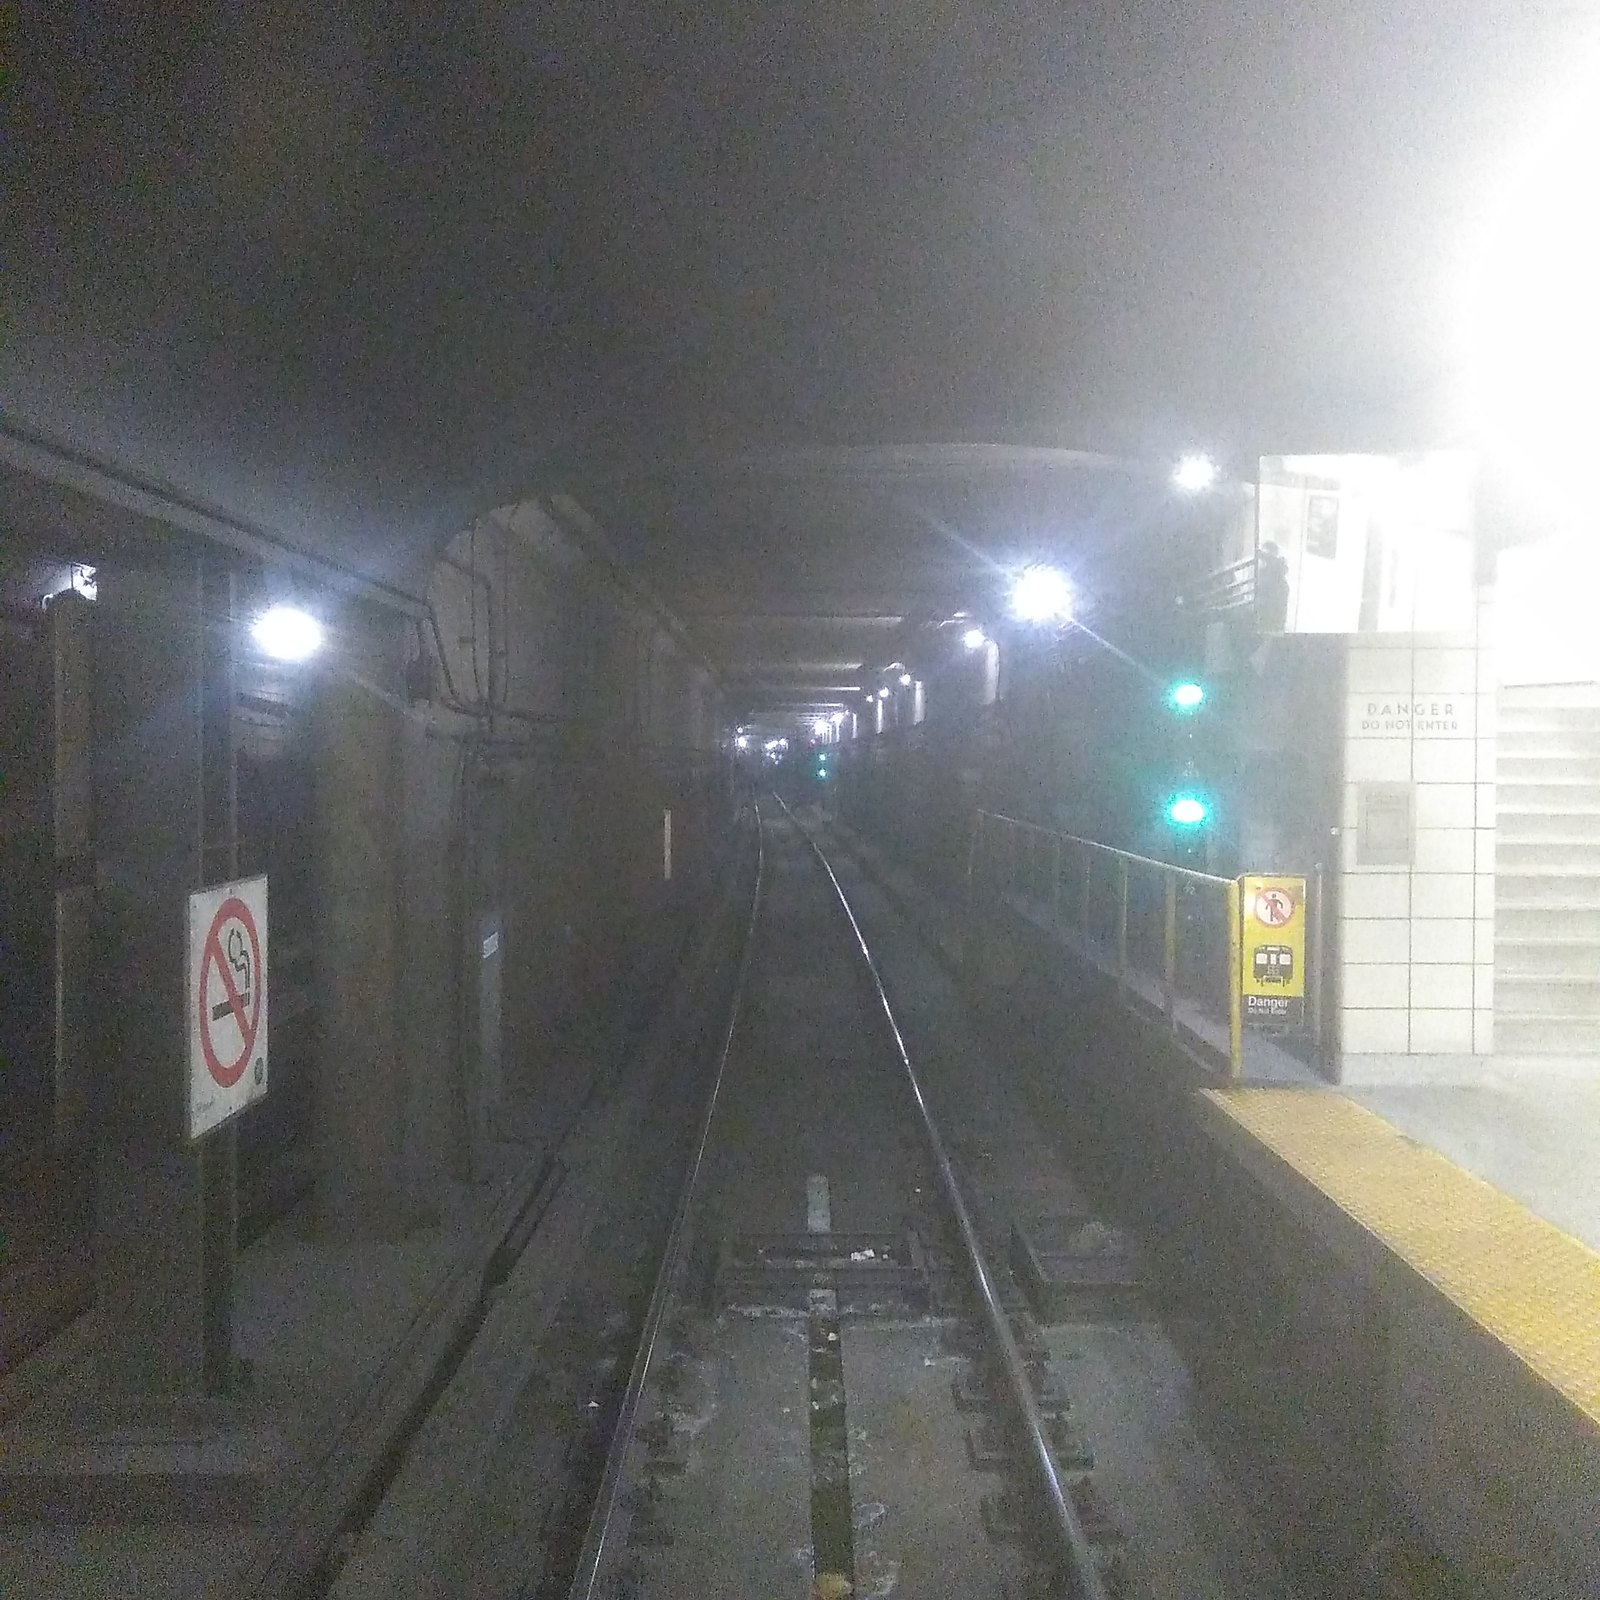 Looking eastbound through glass, Spadina #toronto #ttc #subway #spadina #tunnel